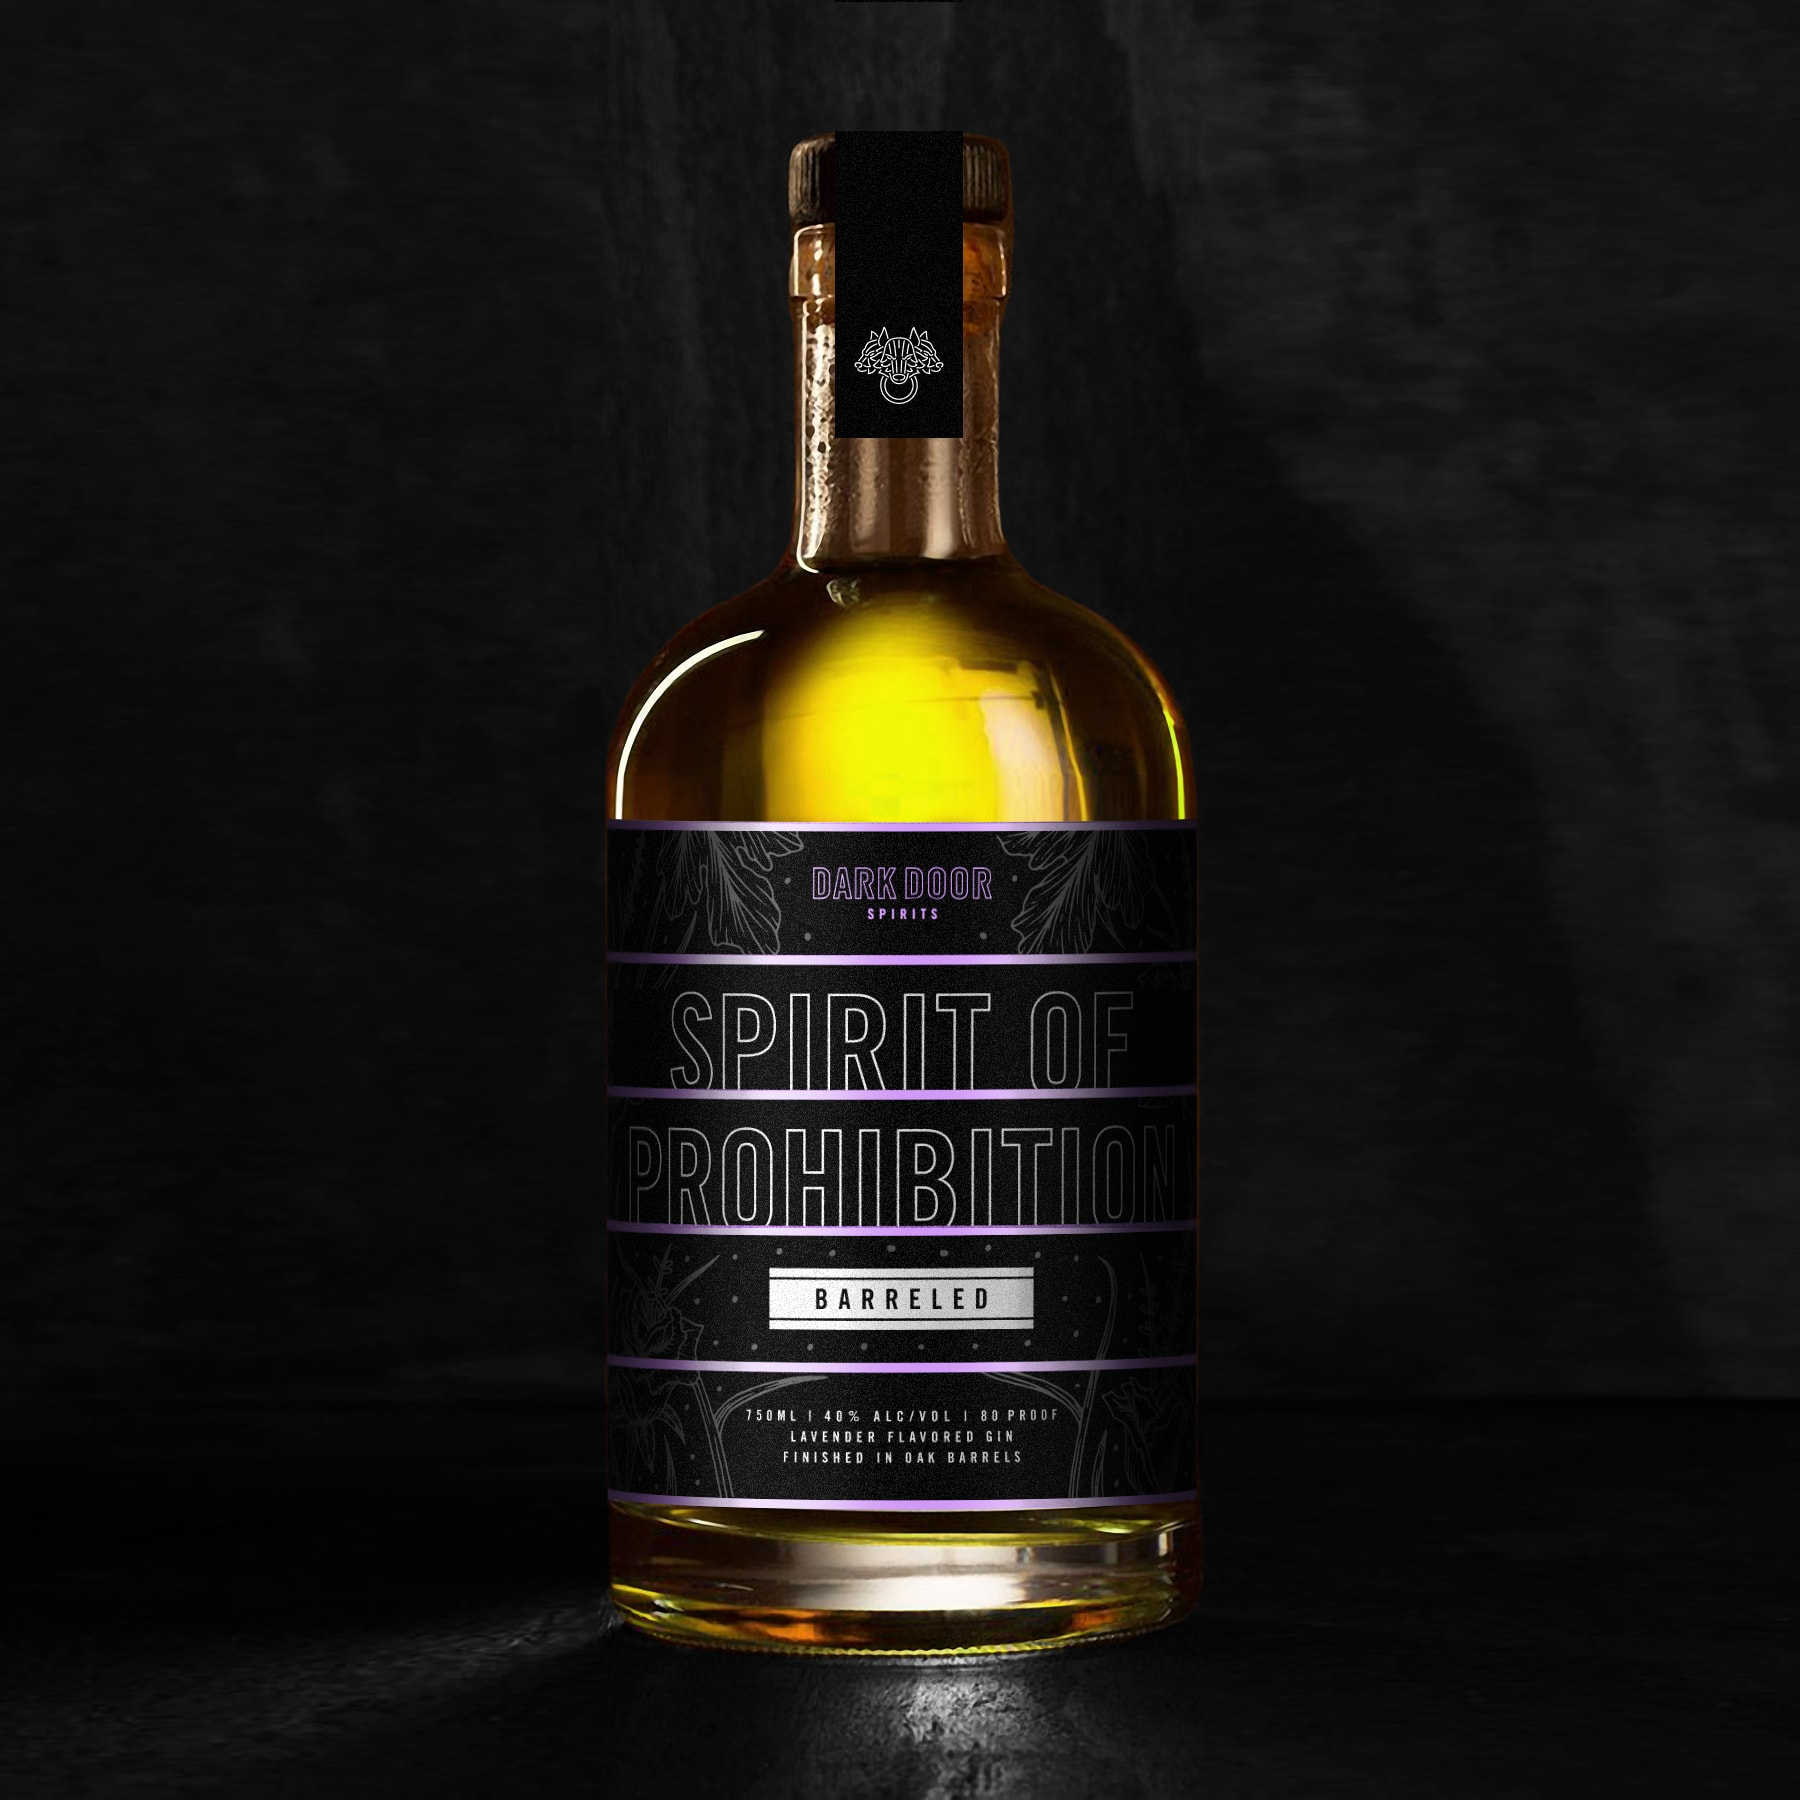 BARRELED SPIRIT OF PROHIBITION - Fresh lavender buds are macerated providing dry lavender notes upon the nose and a unique color to the spirit. As it develops in the glass, hints of coriander, citrus, and rose shine through.